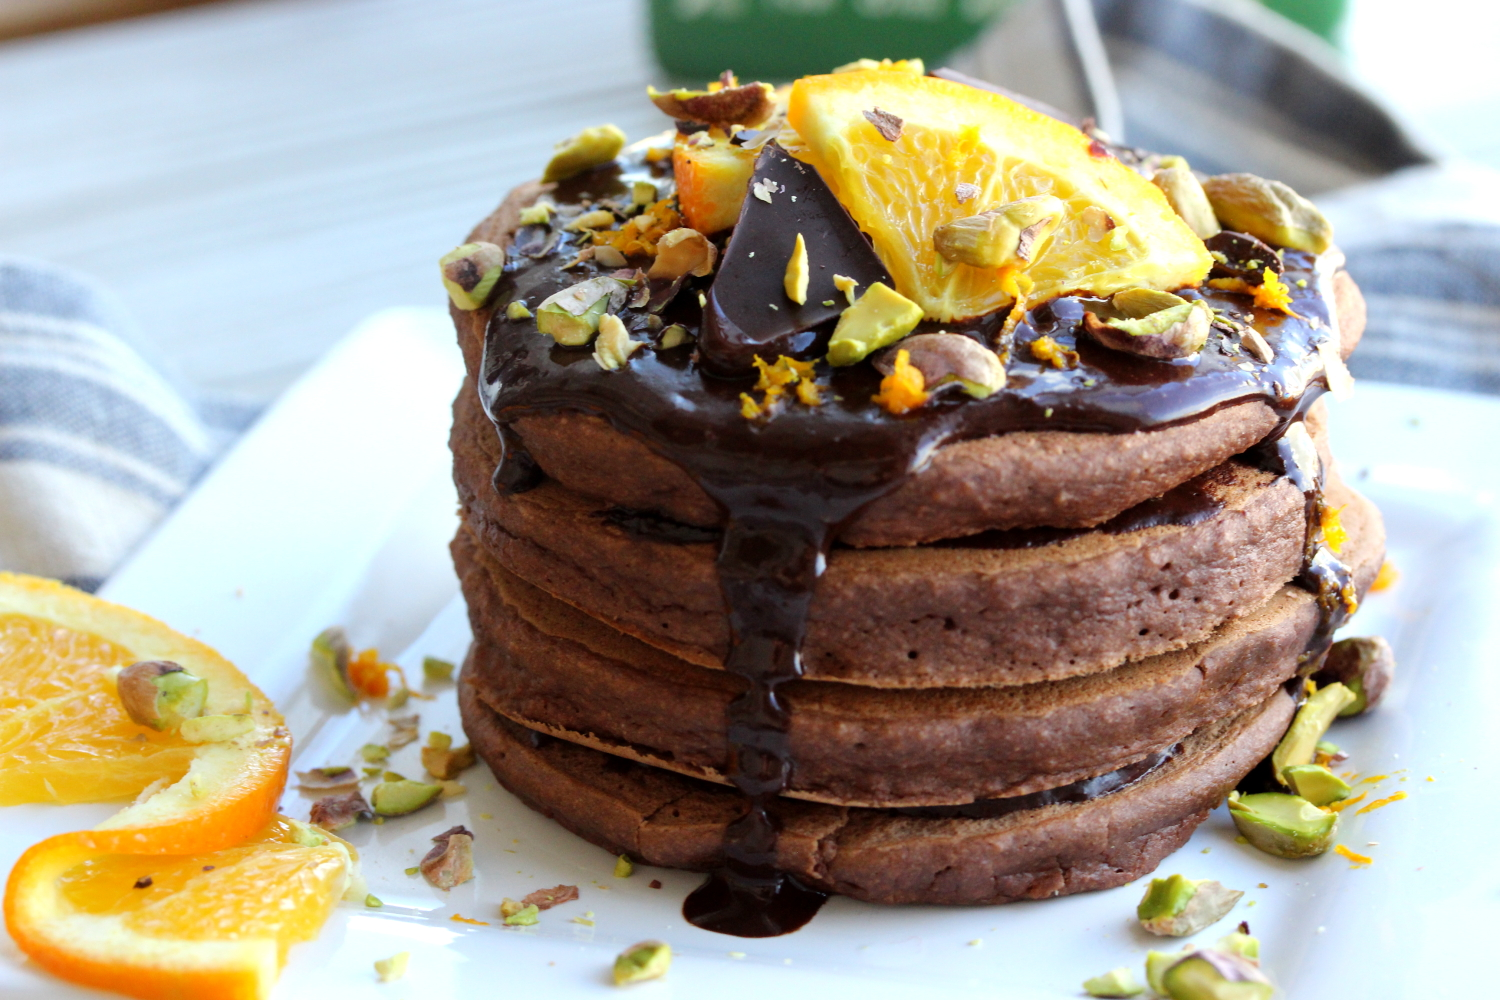 Chocorangepancakes2